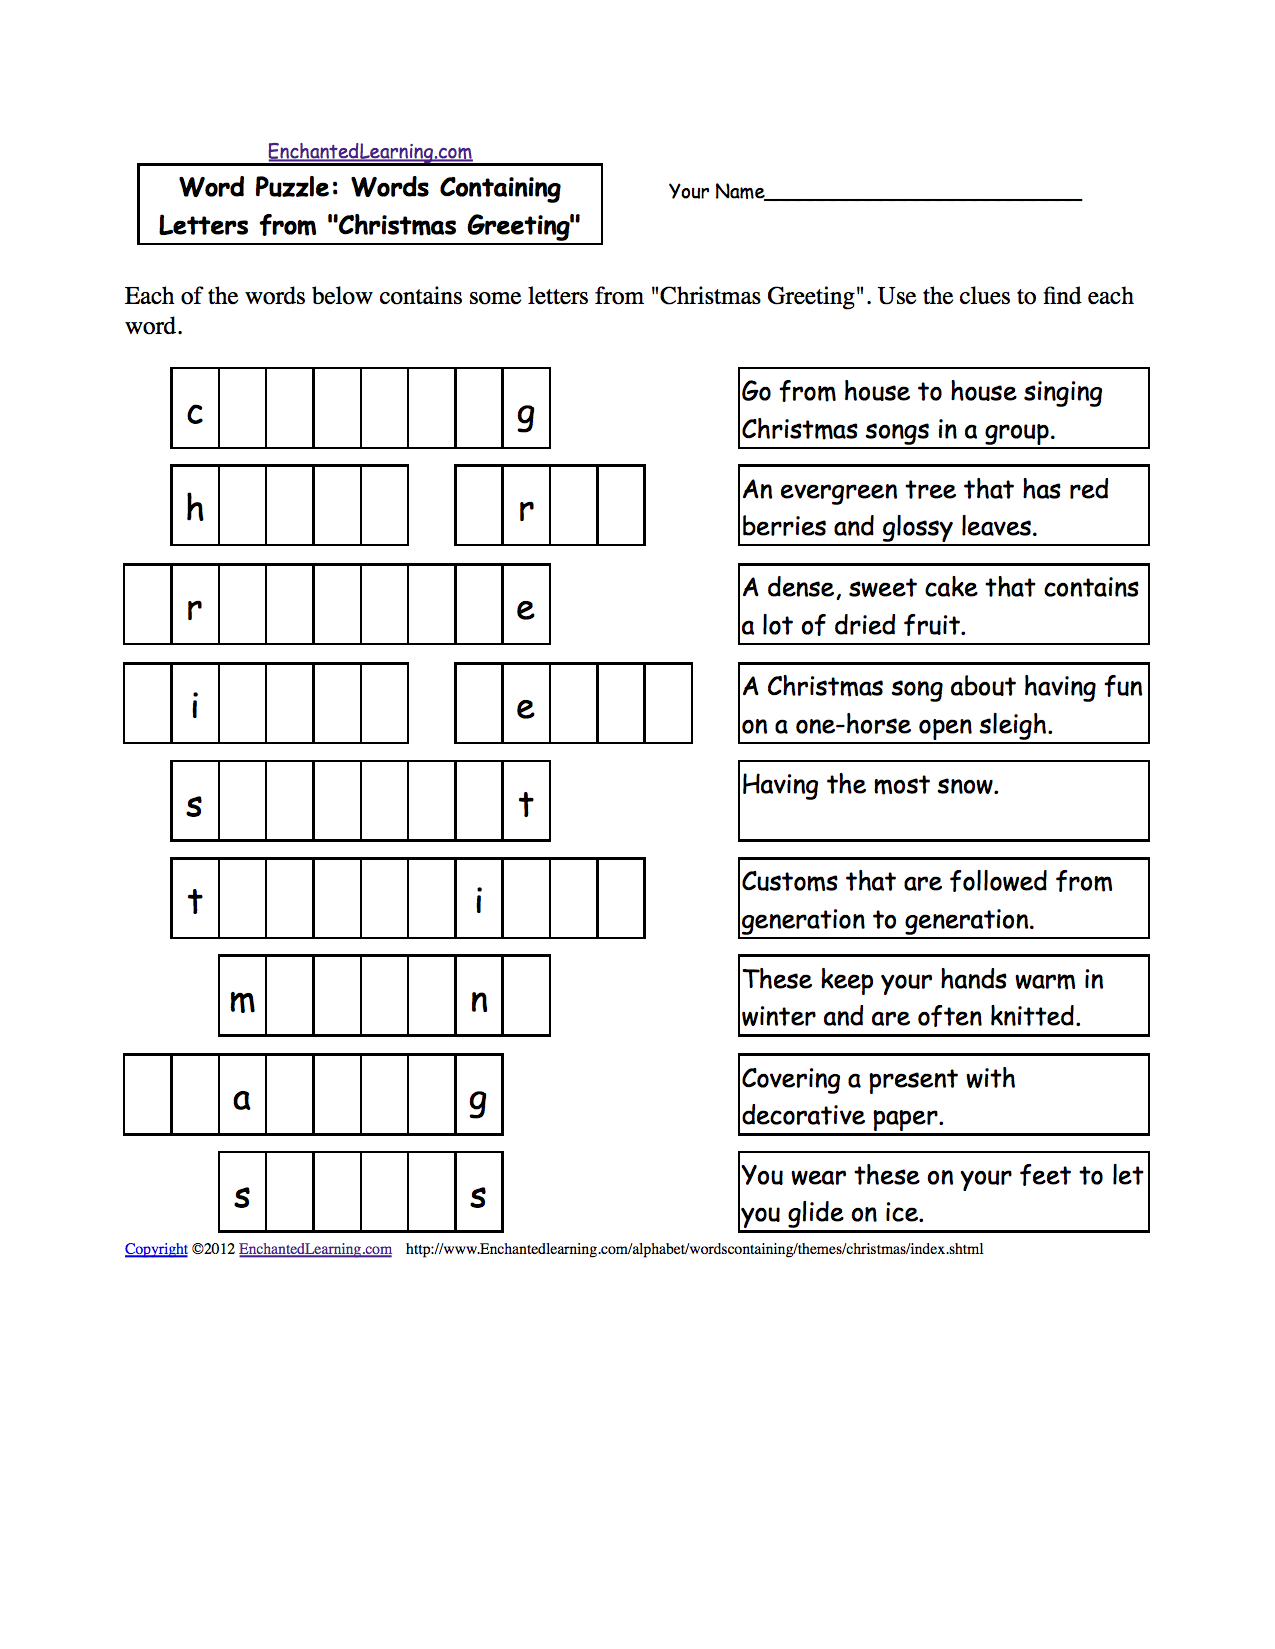 Worksheet Spanish Greetings Worksheets spanish greetings worksheets pdf delwfg com christmas crafts for kids enchantedlearning worksheets